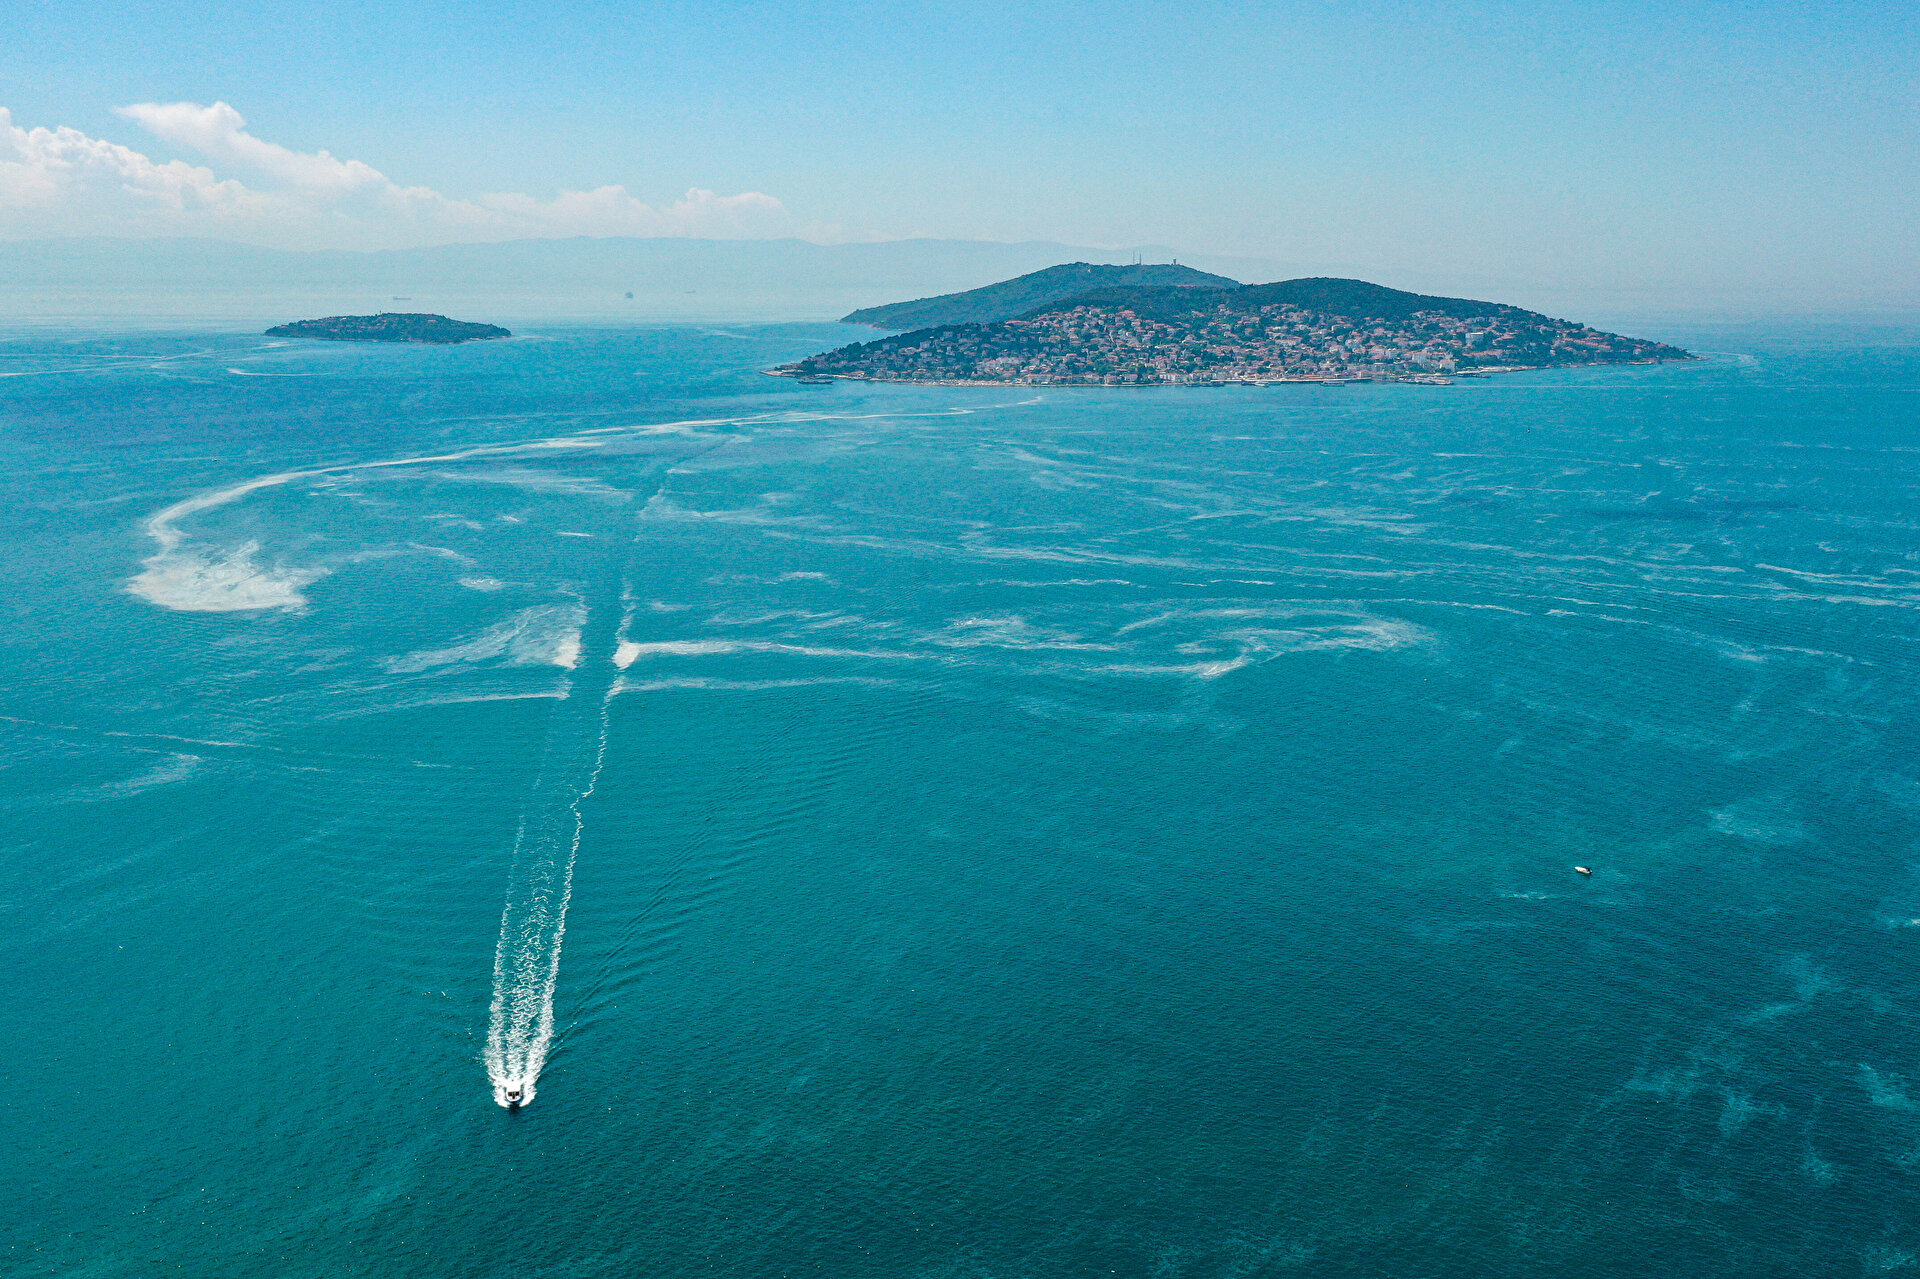 Mucilage covers part of sea surface in Turkey